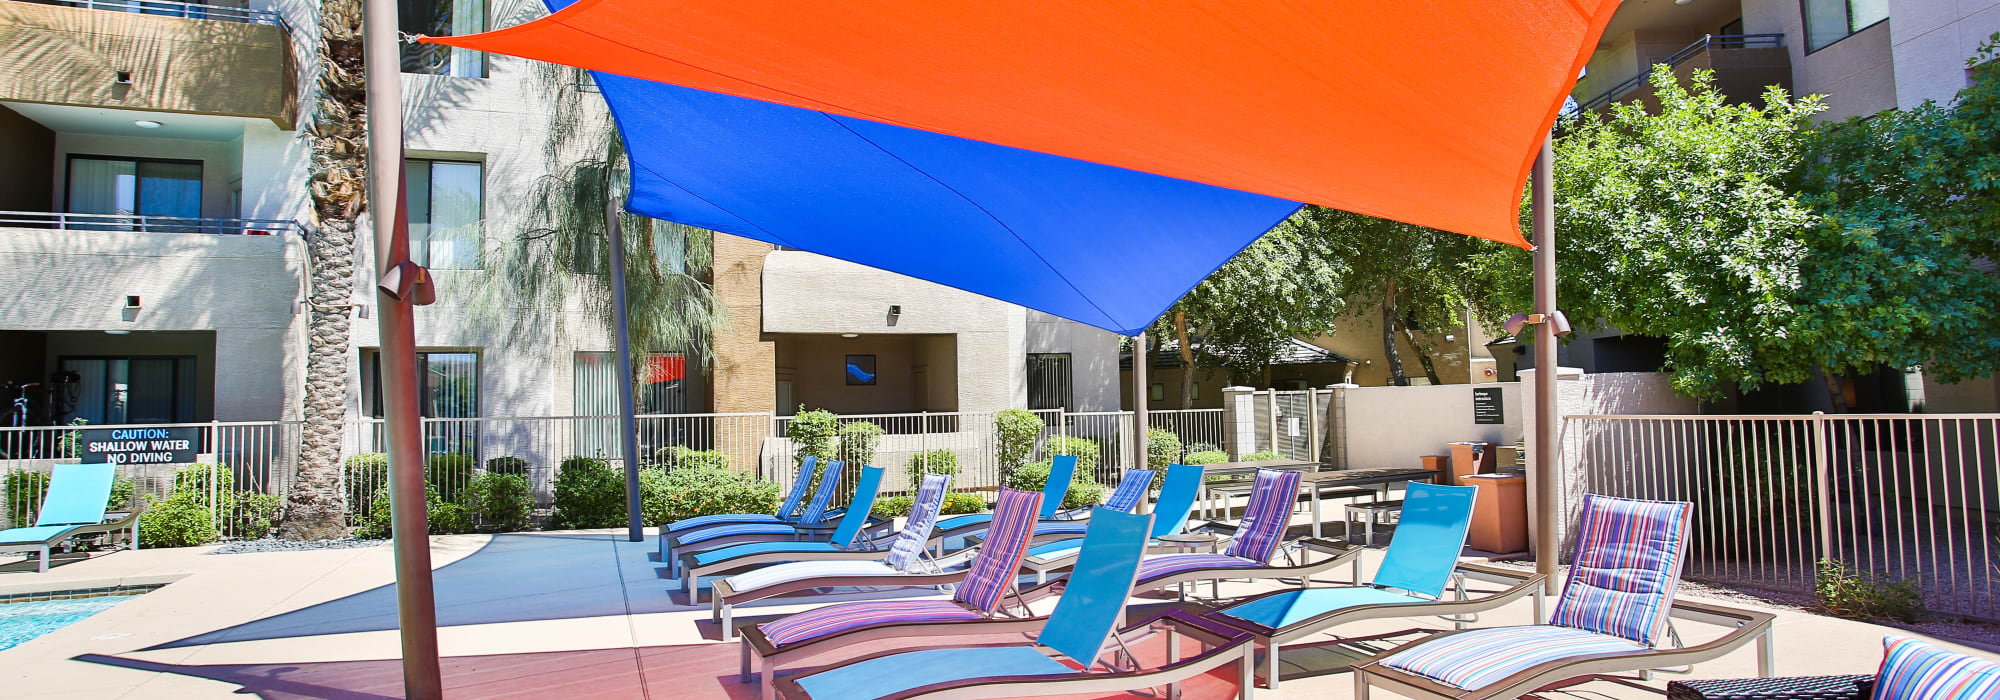 Spectra on 7th South poolside seating in Phoenix, Arizona